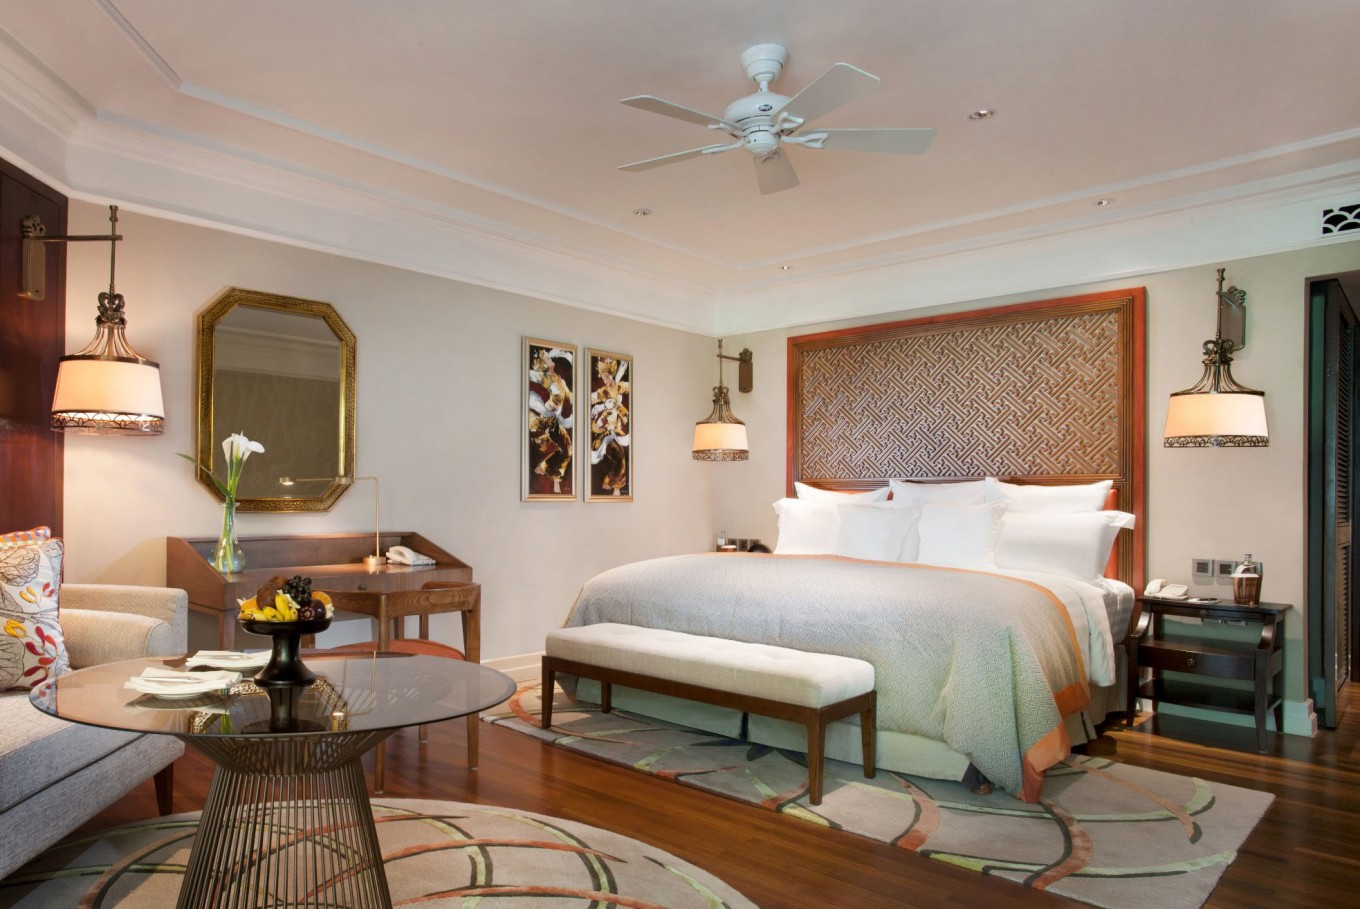 InterContinental Bali Resort introduces redesigned rooms